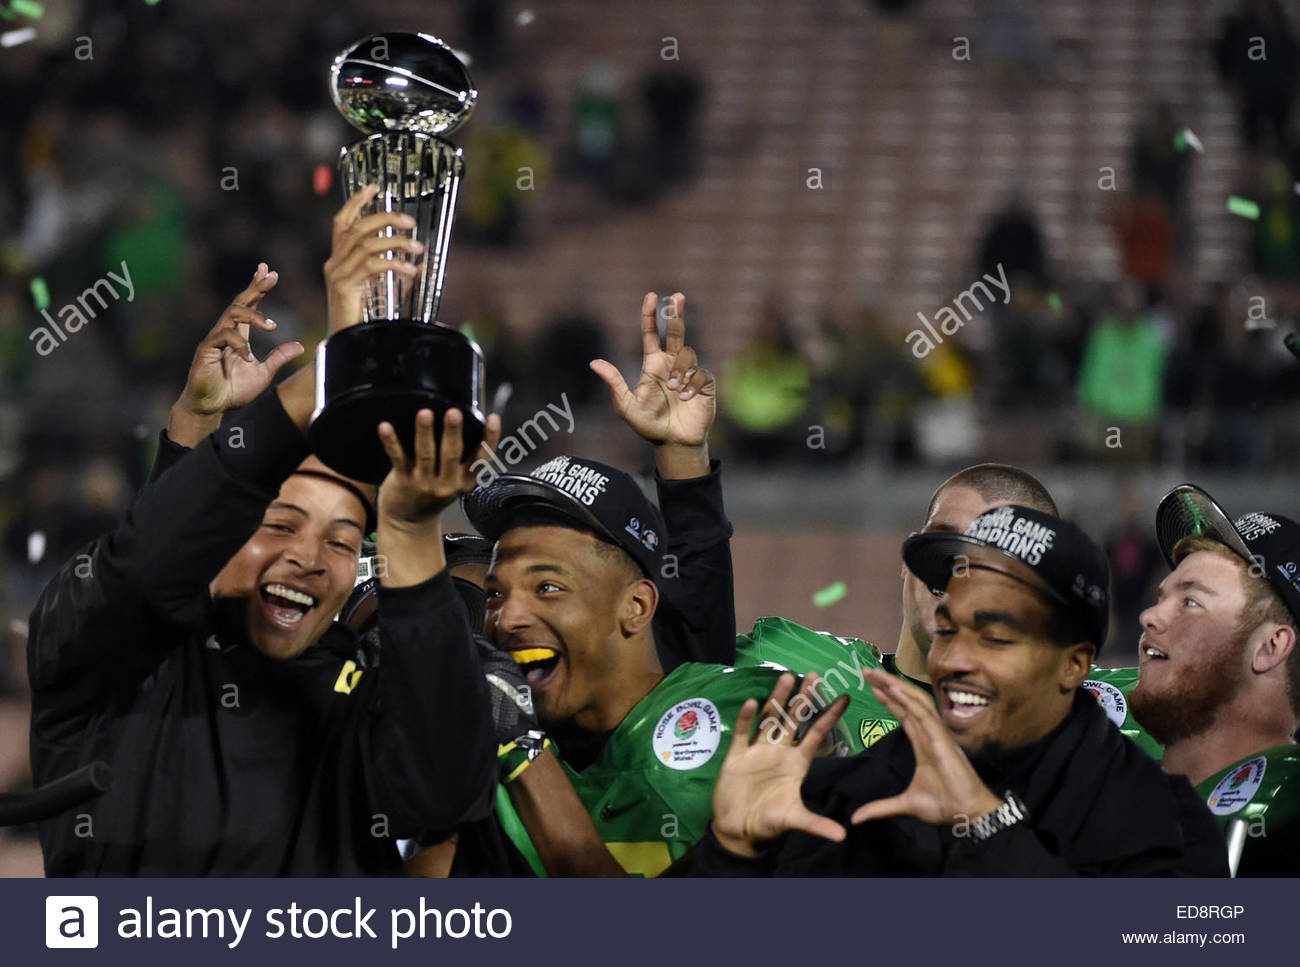 Pasadena, California, USA. 01st Jan, 2015. Oregon Ducks celebrate with the Rose Bowl trophy after defeating the - Stock Image